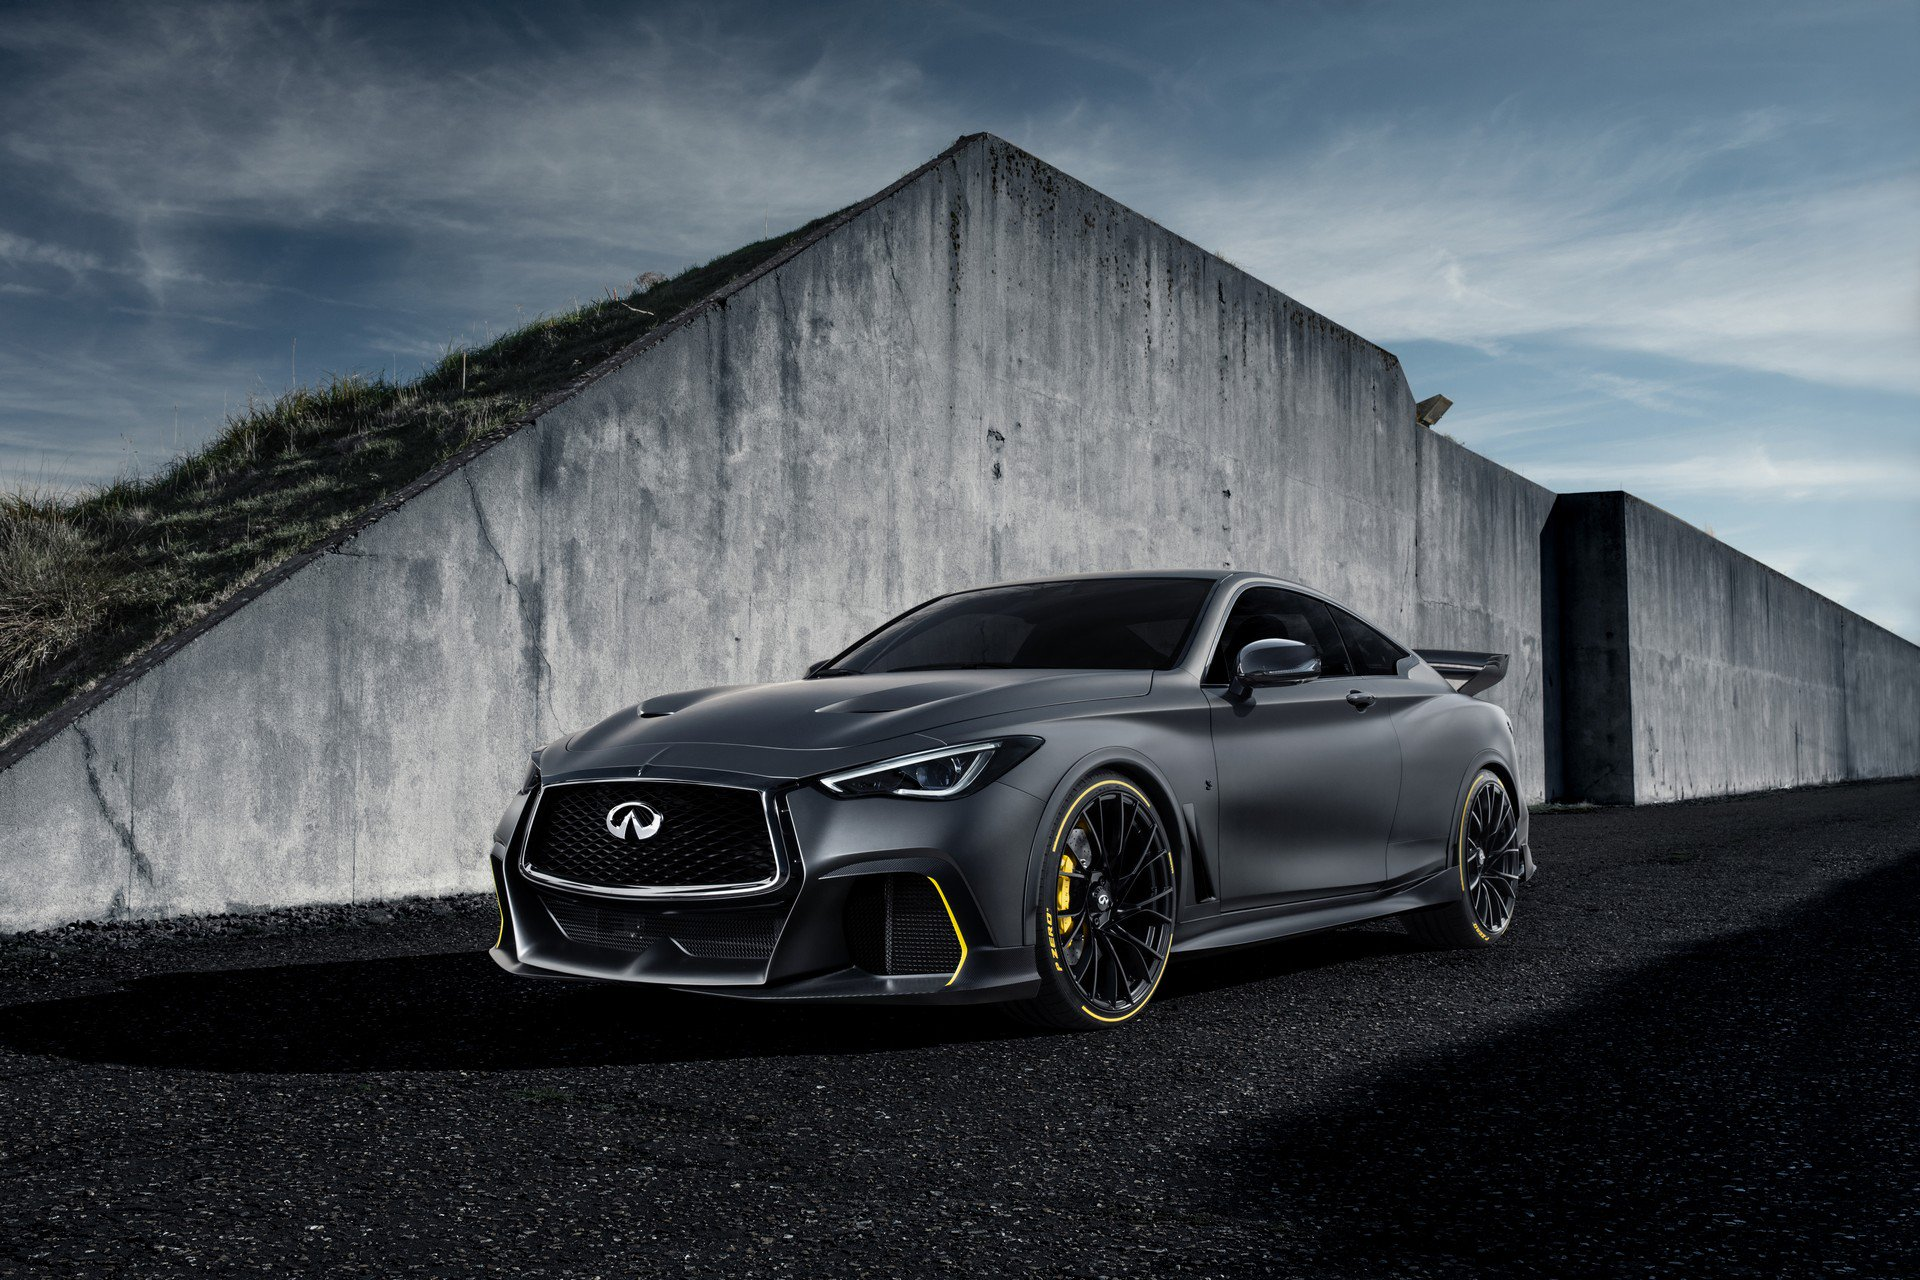 Infiniti Project Black S Prototype (2)